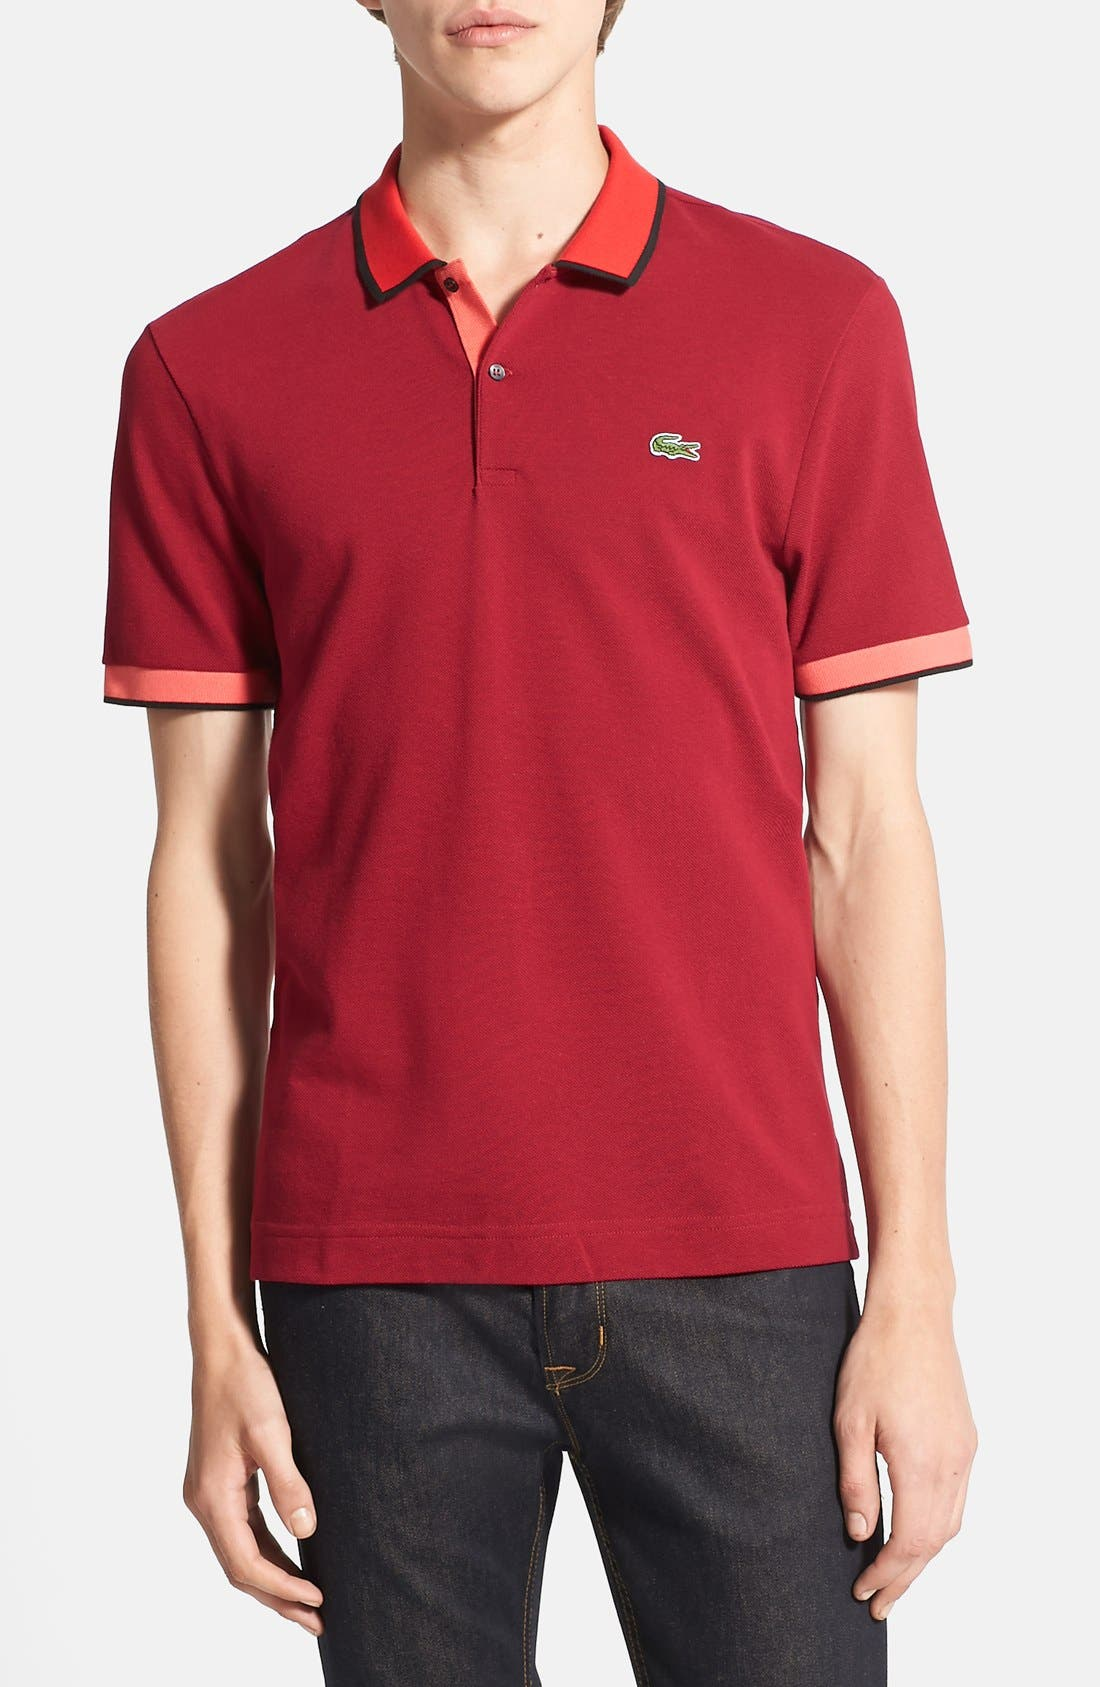 Alternate Image 1 Selected - Lacoste L!VE Contrast Trim Piqué Polo